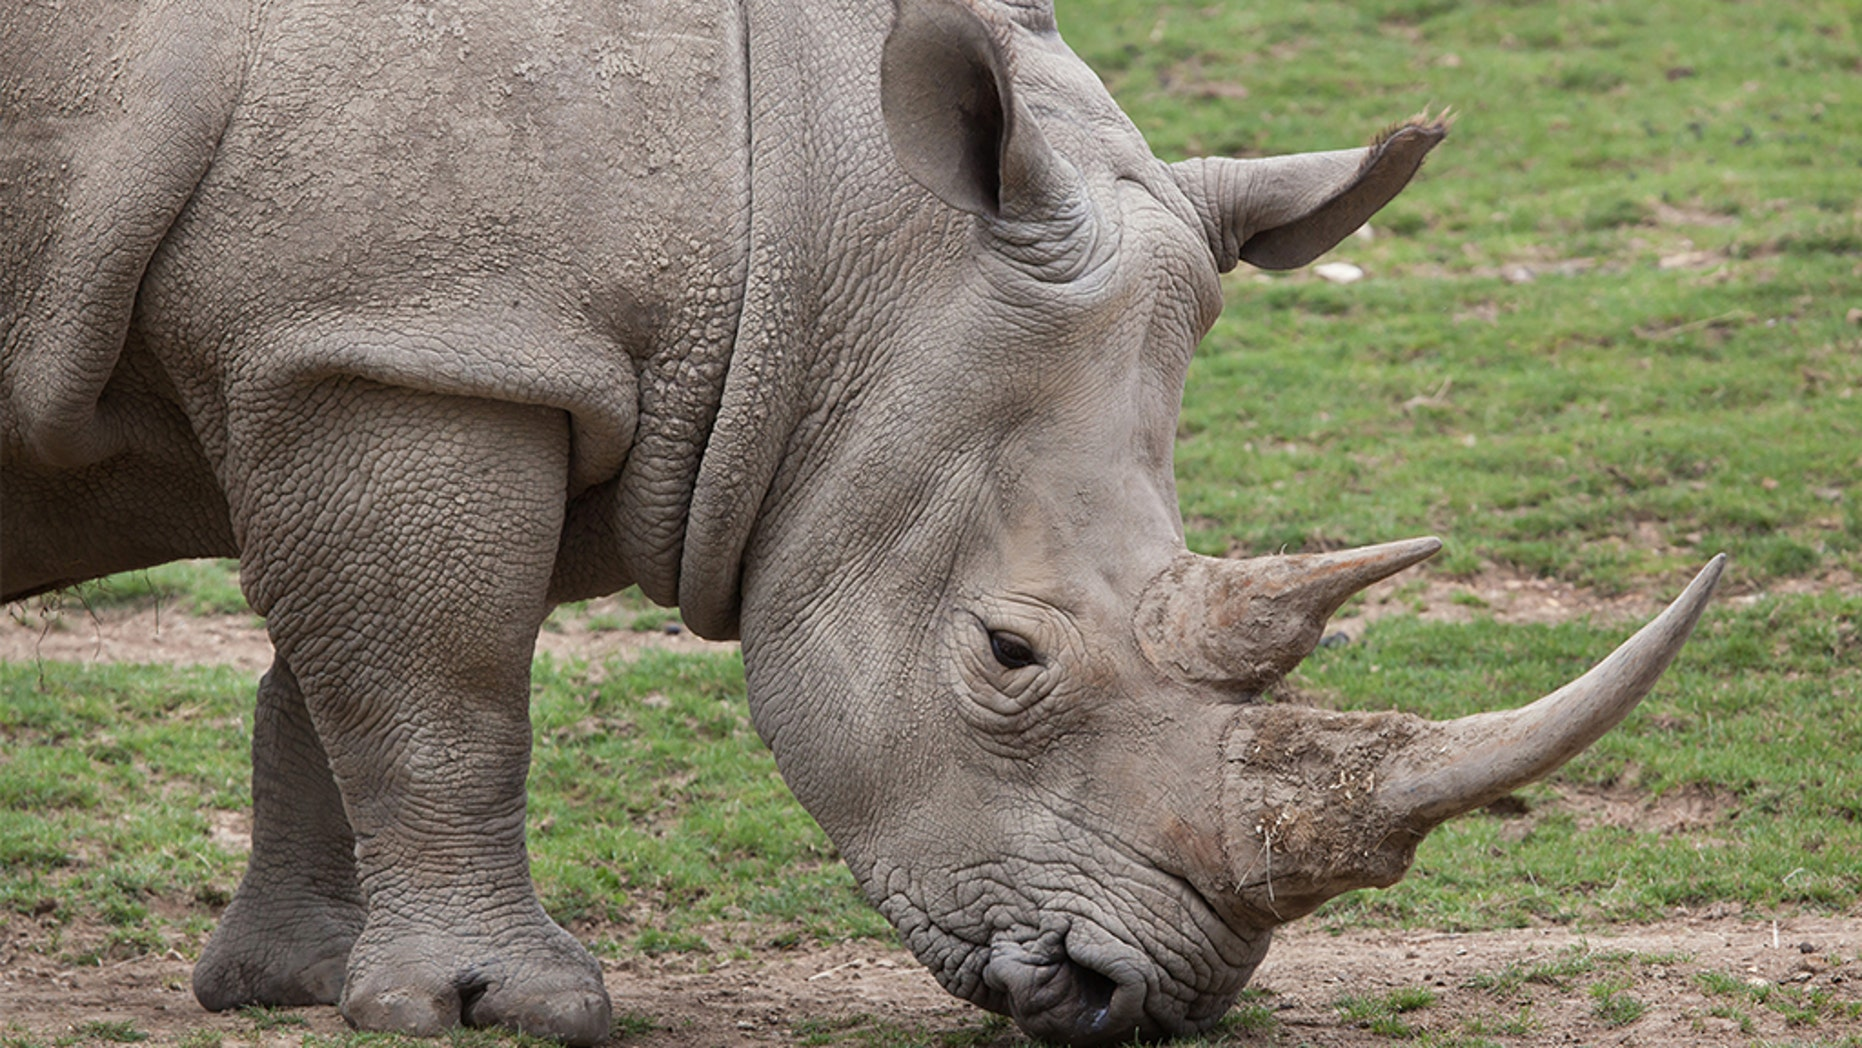 A suspected rhino poacher was trampled by an elephantand then eaten by lions at a South African national park.